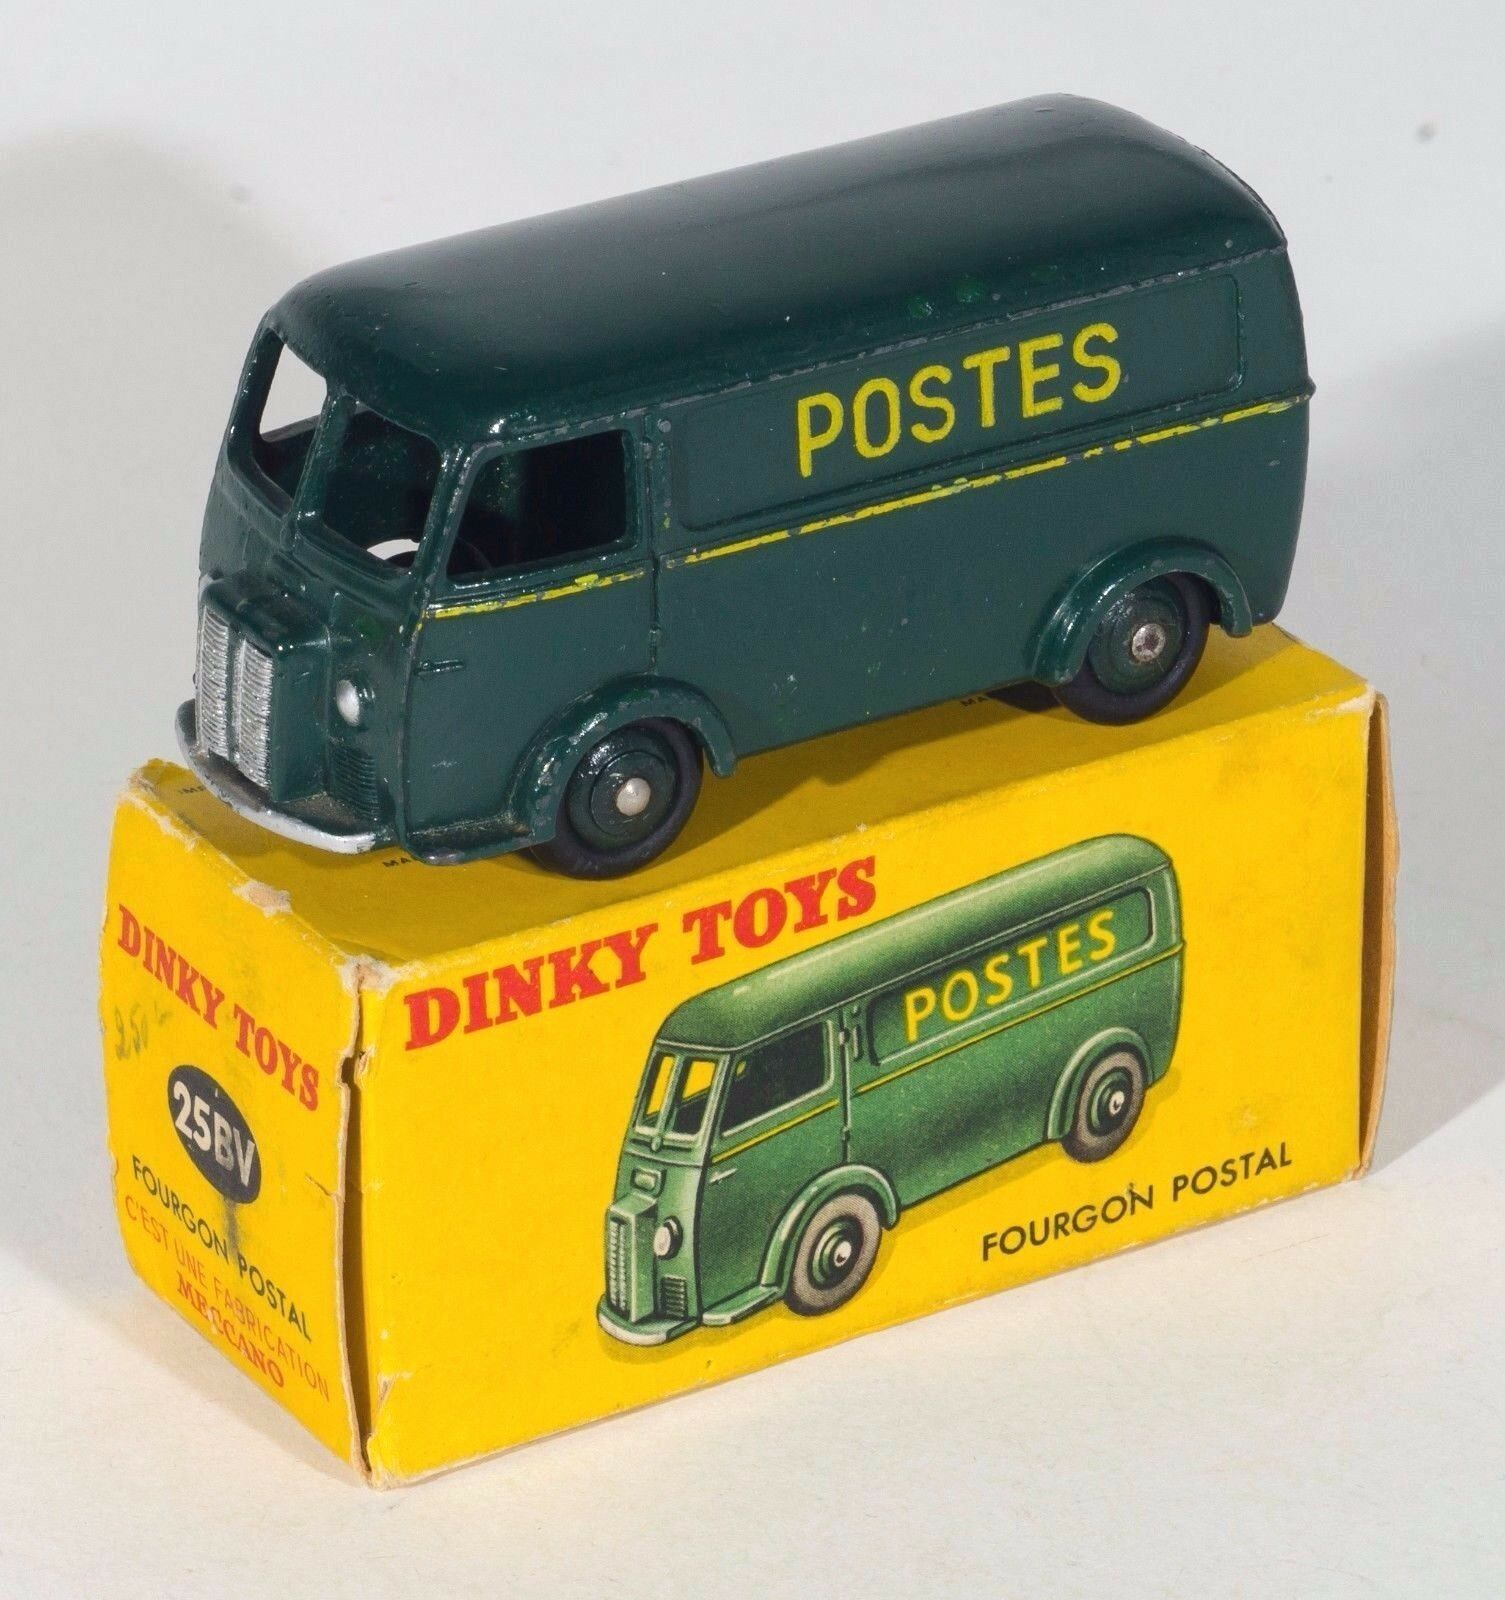 FRENCH Dinky 25BV Fourgon Postal  Peugeot  Post Van.Dark vert. voitureD BOX. 1950's.  magasin d'offre